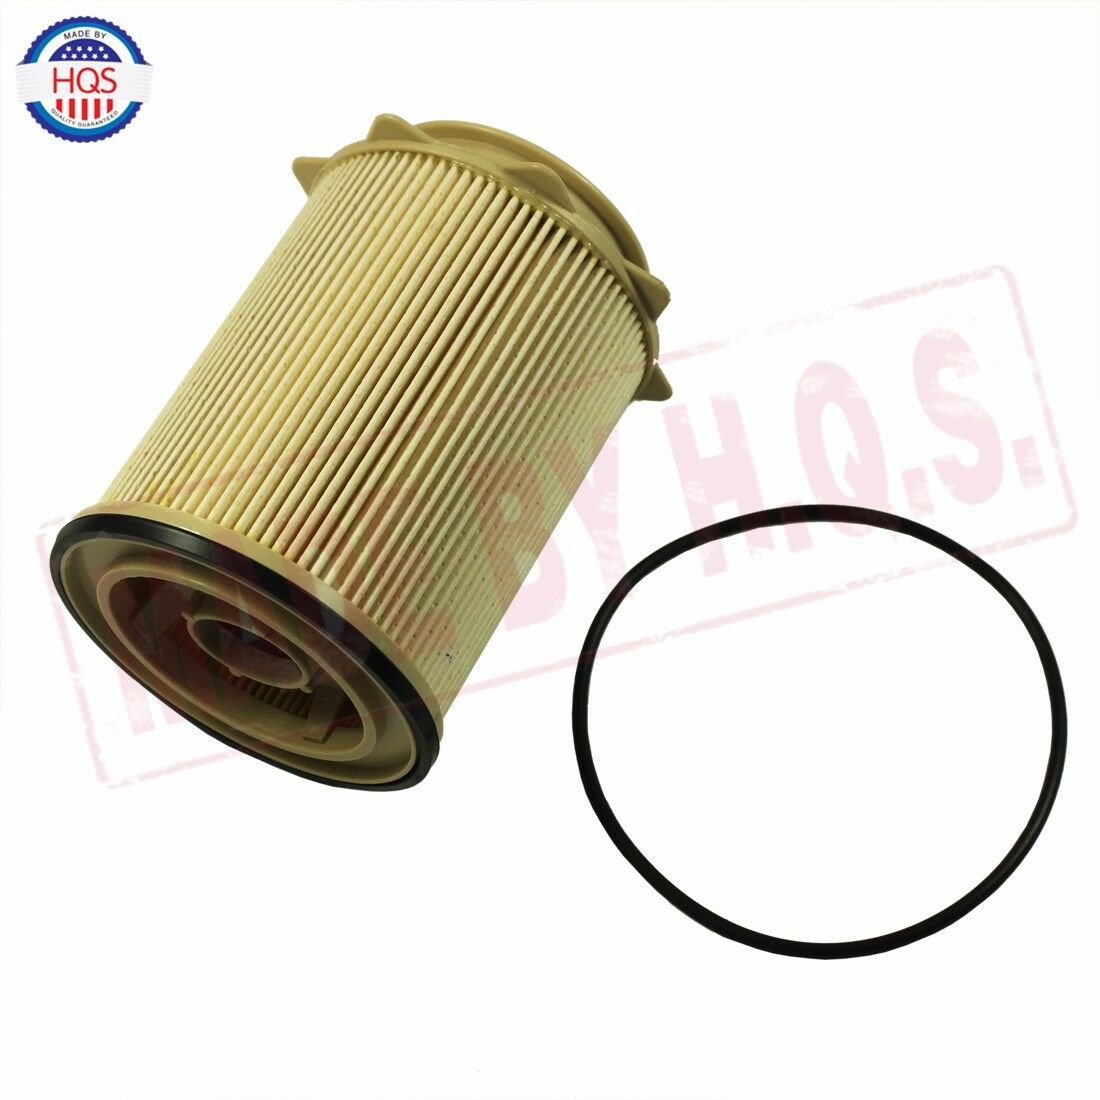 Cummins Turbo Diesel Fuel Filter For 2010 2016 Dodge Ram 67 Liter 2013 5500 Location 68065608aa 1 Of 6free Shipping